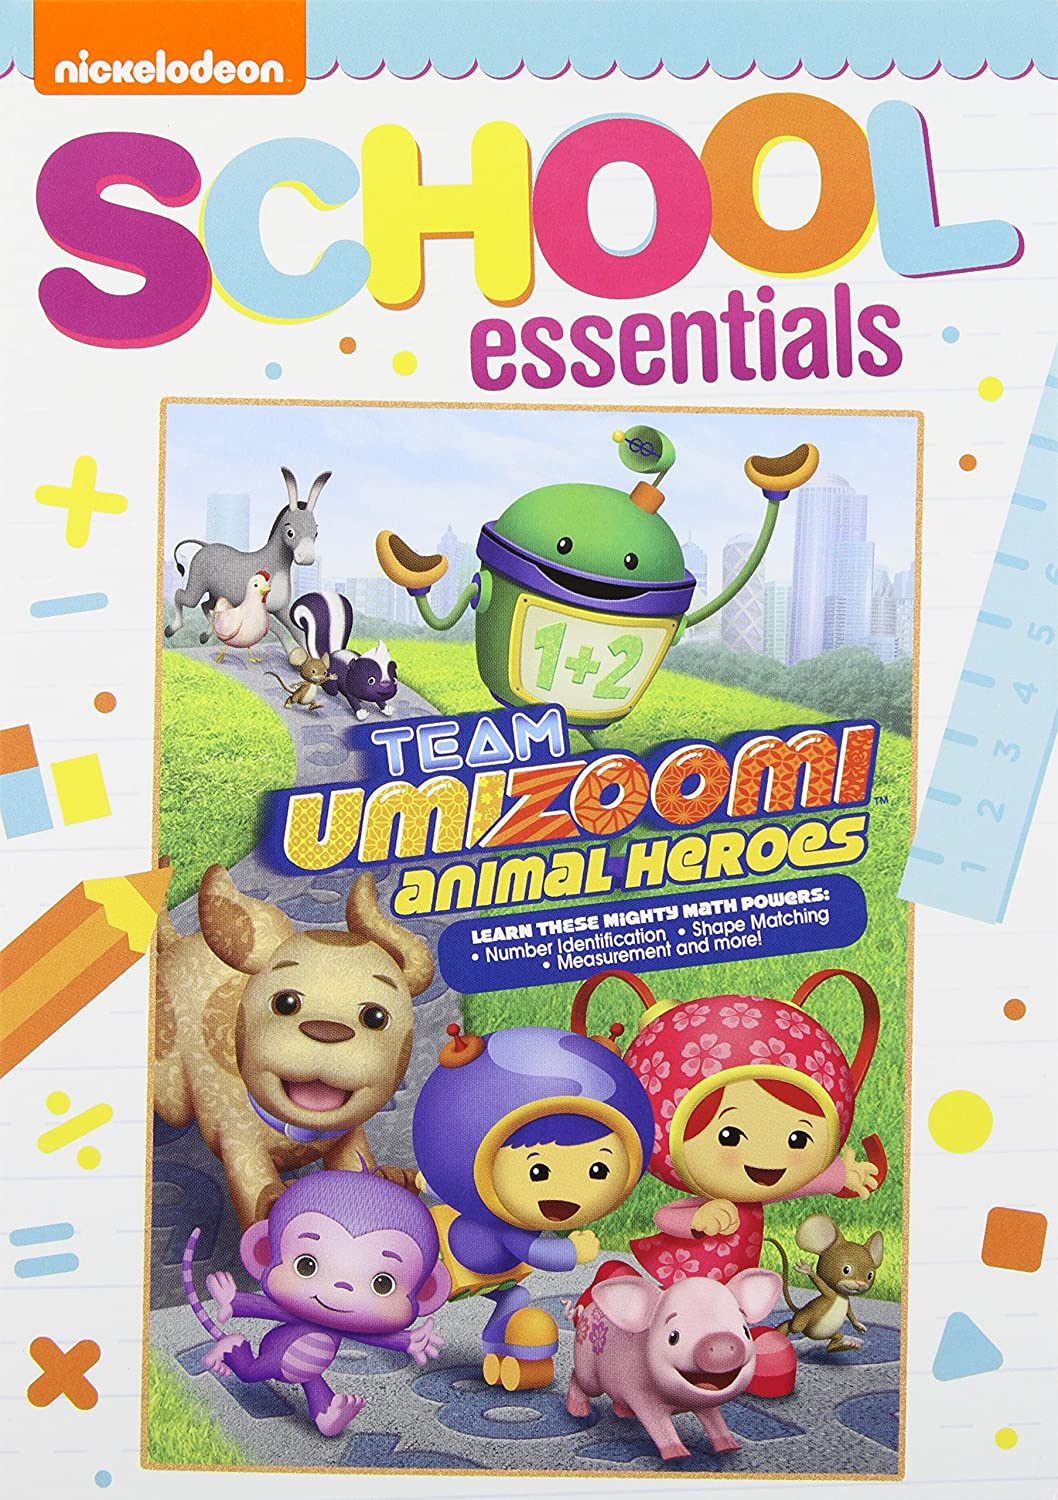 http://www.amazon.com/Team-Umizoomi-Animal-Ethan-Kempner/dp/B00J5G1NEC/